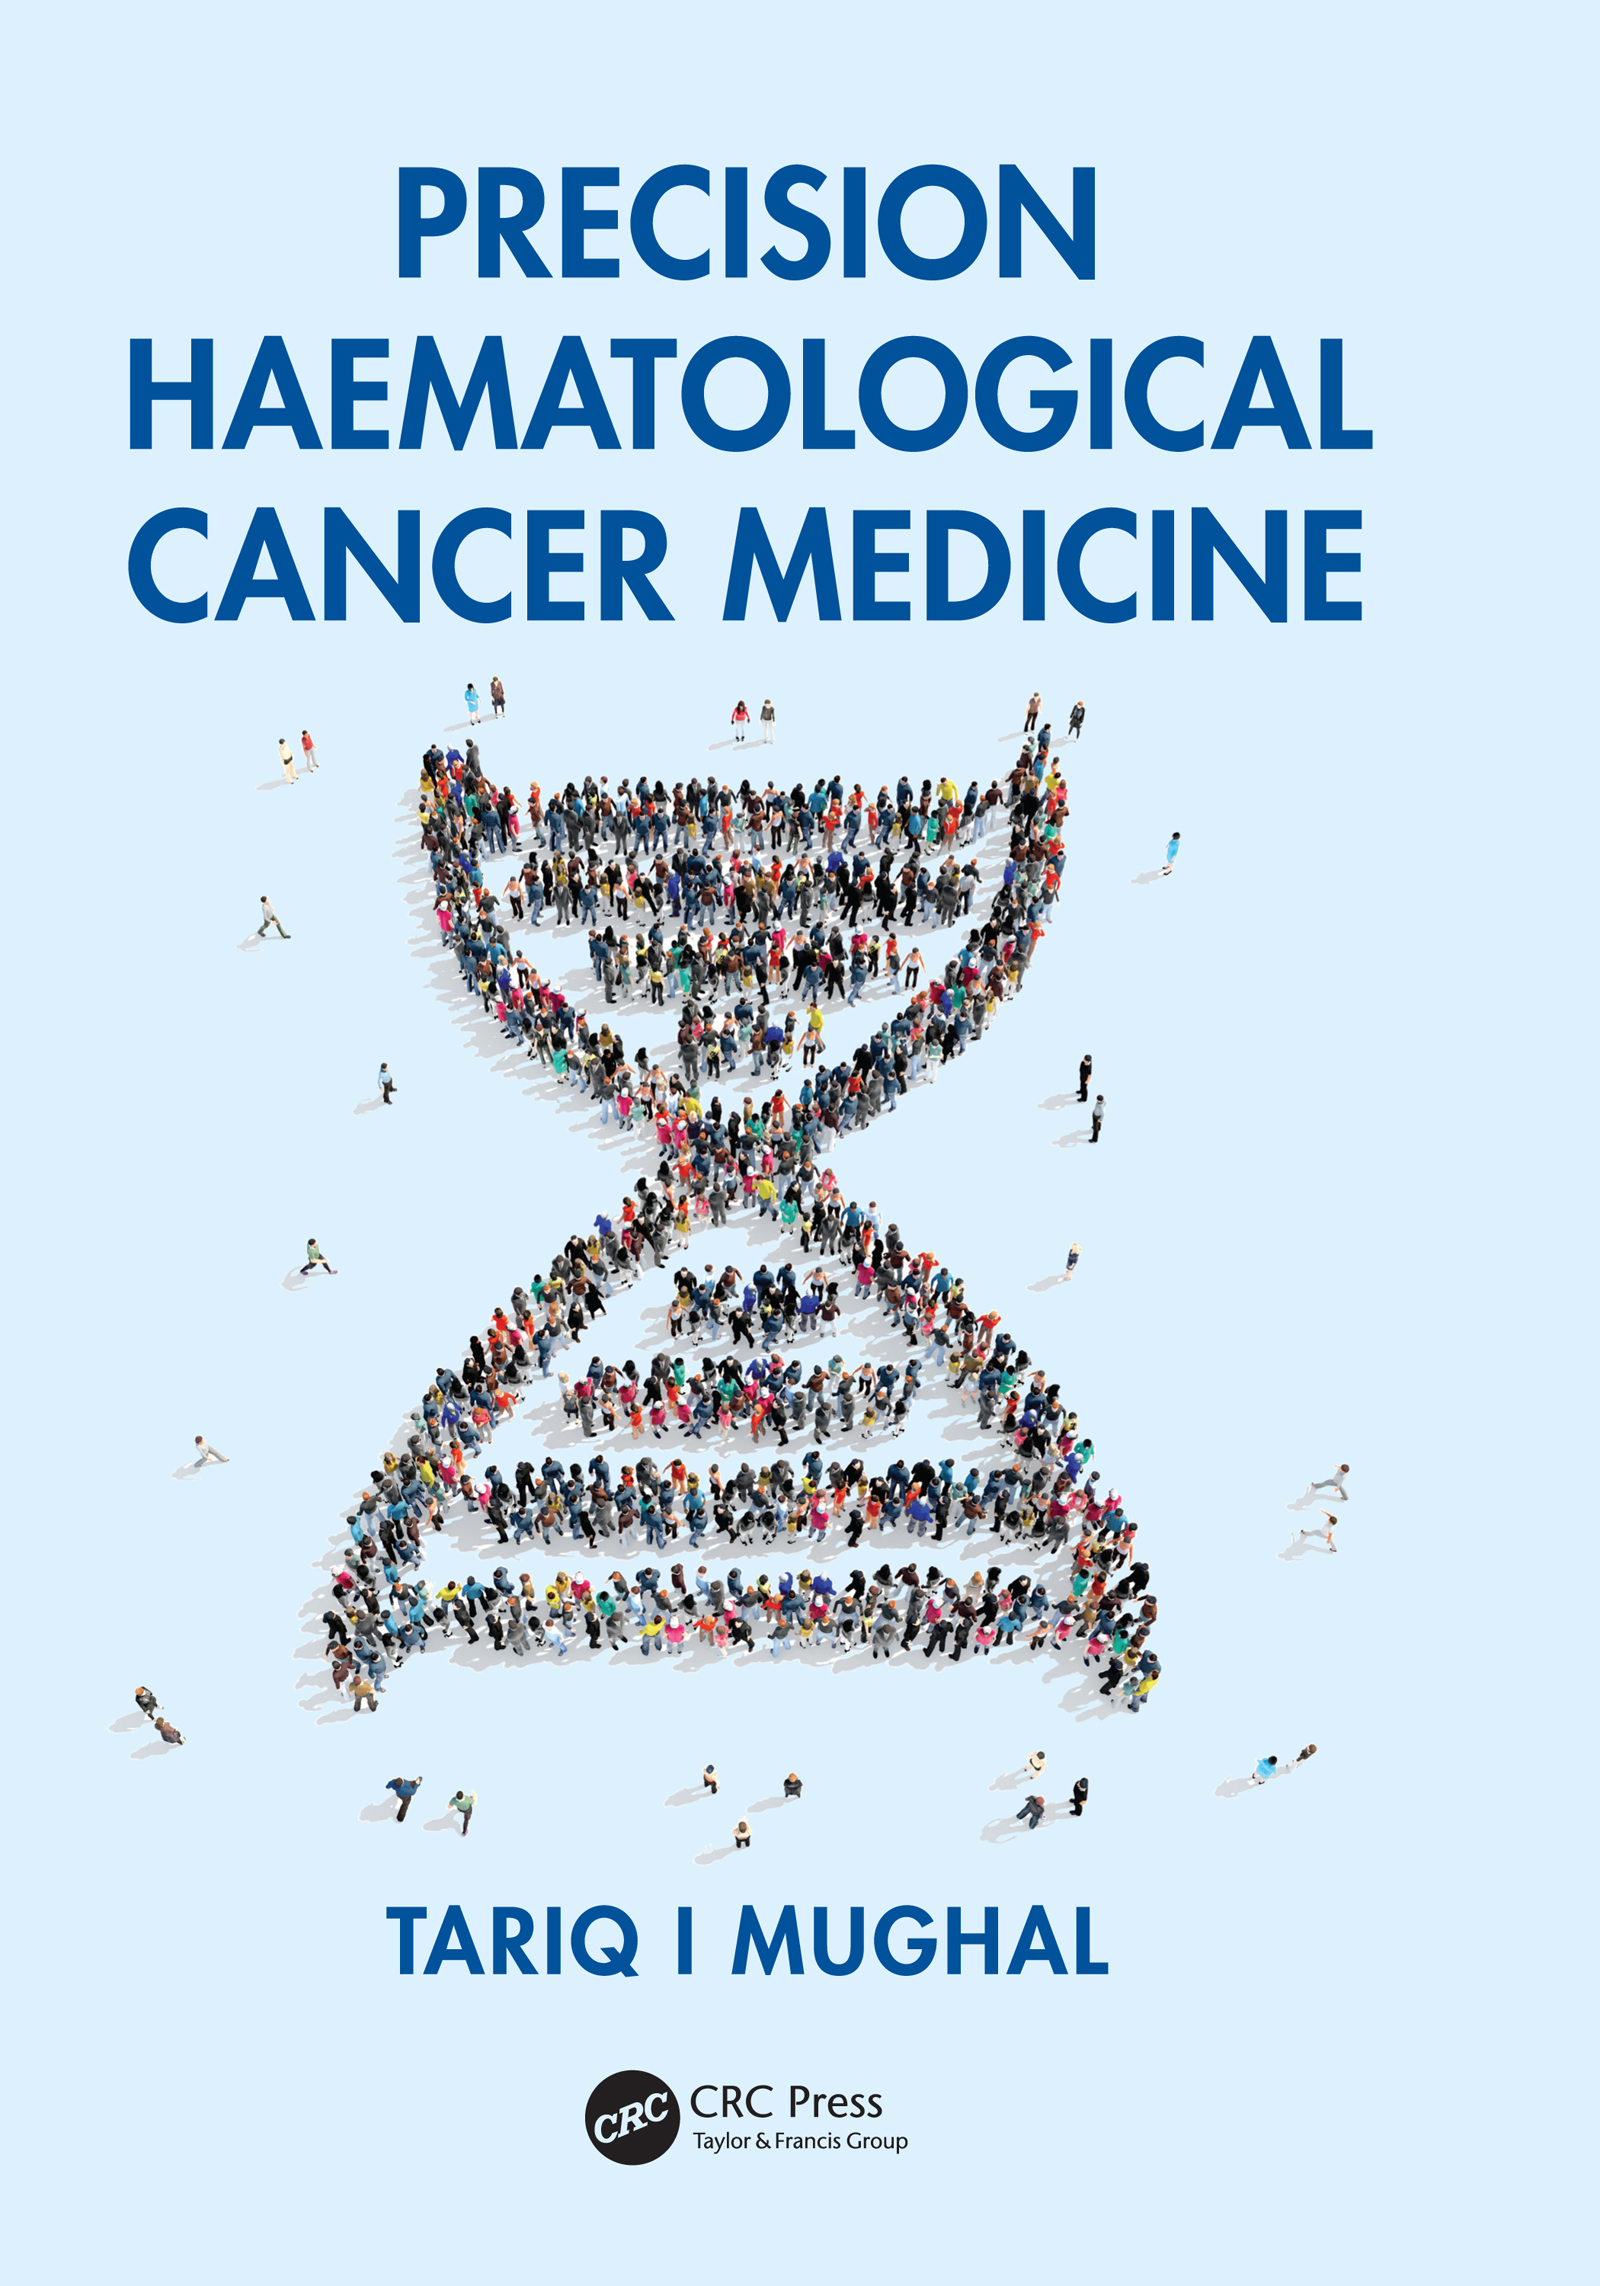 Precision Haematological Cancer Medicine